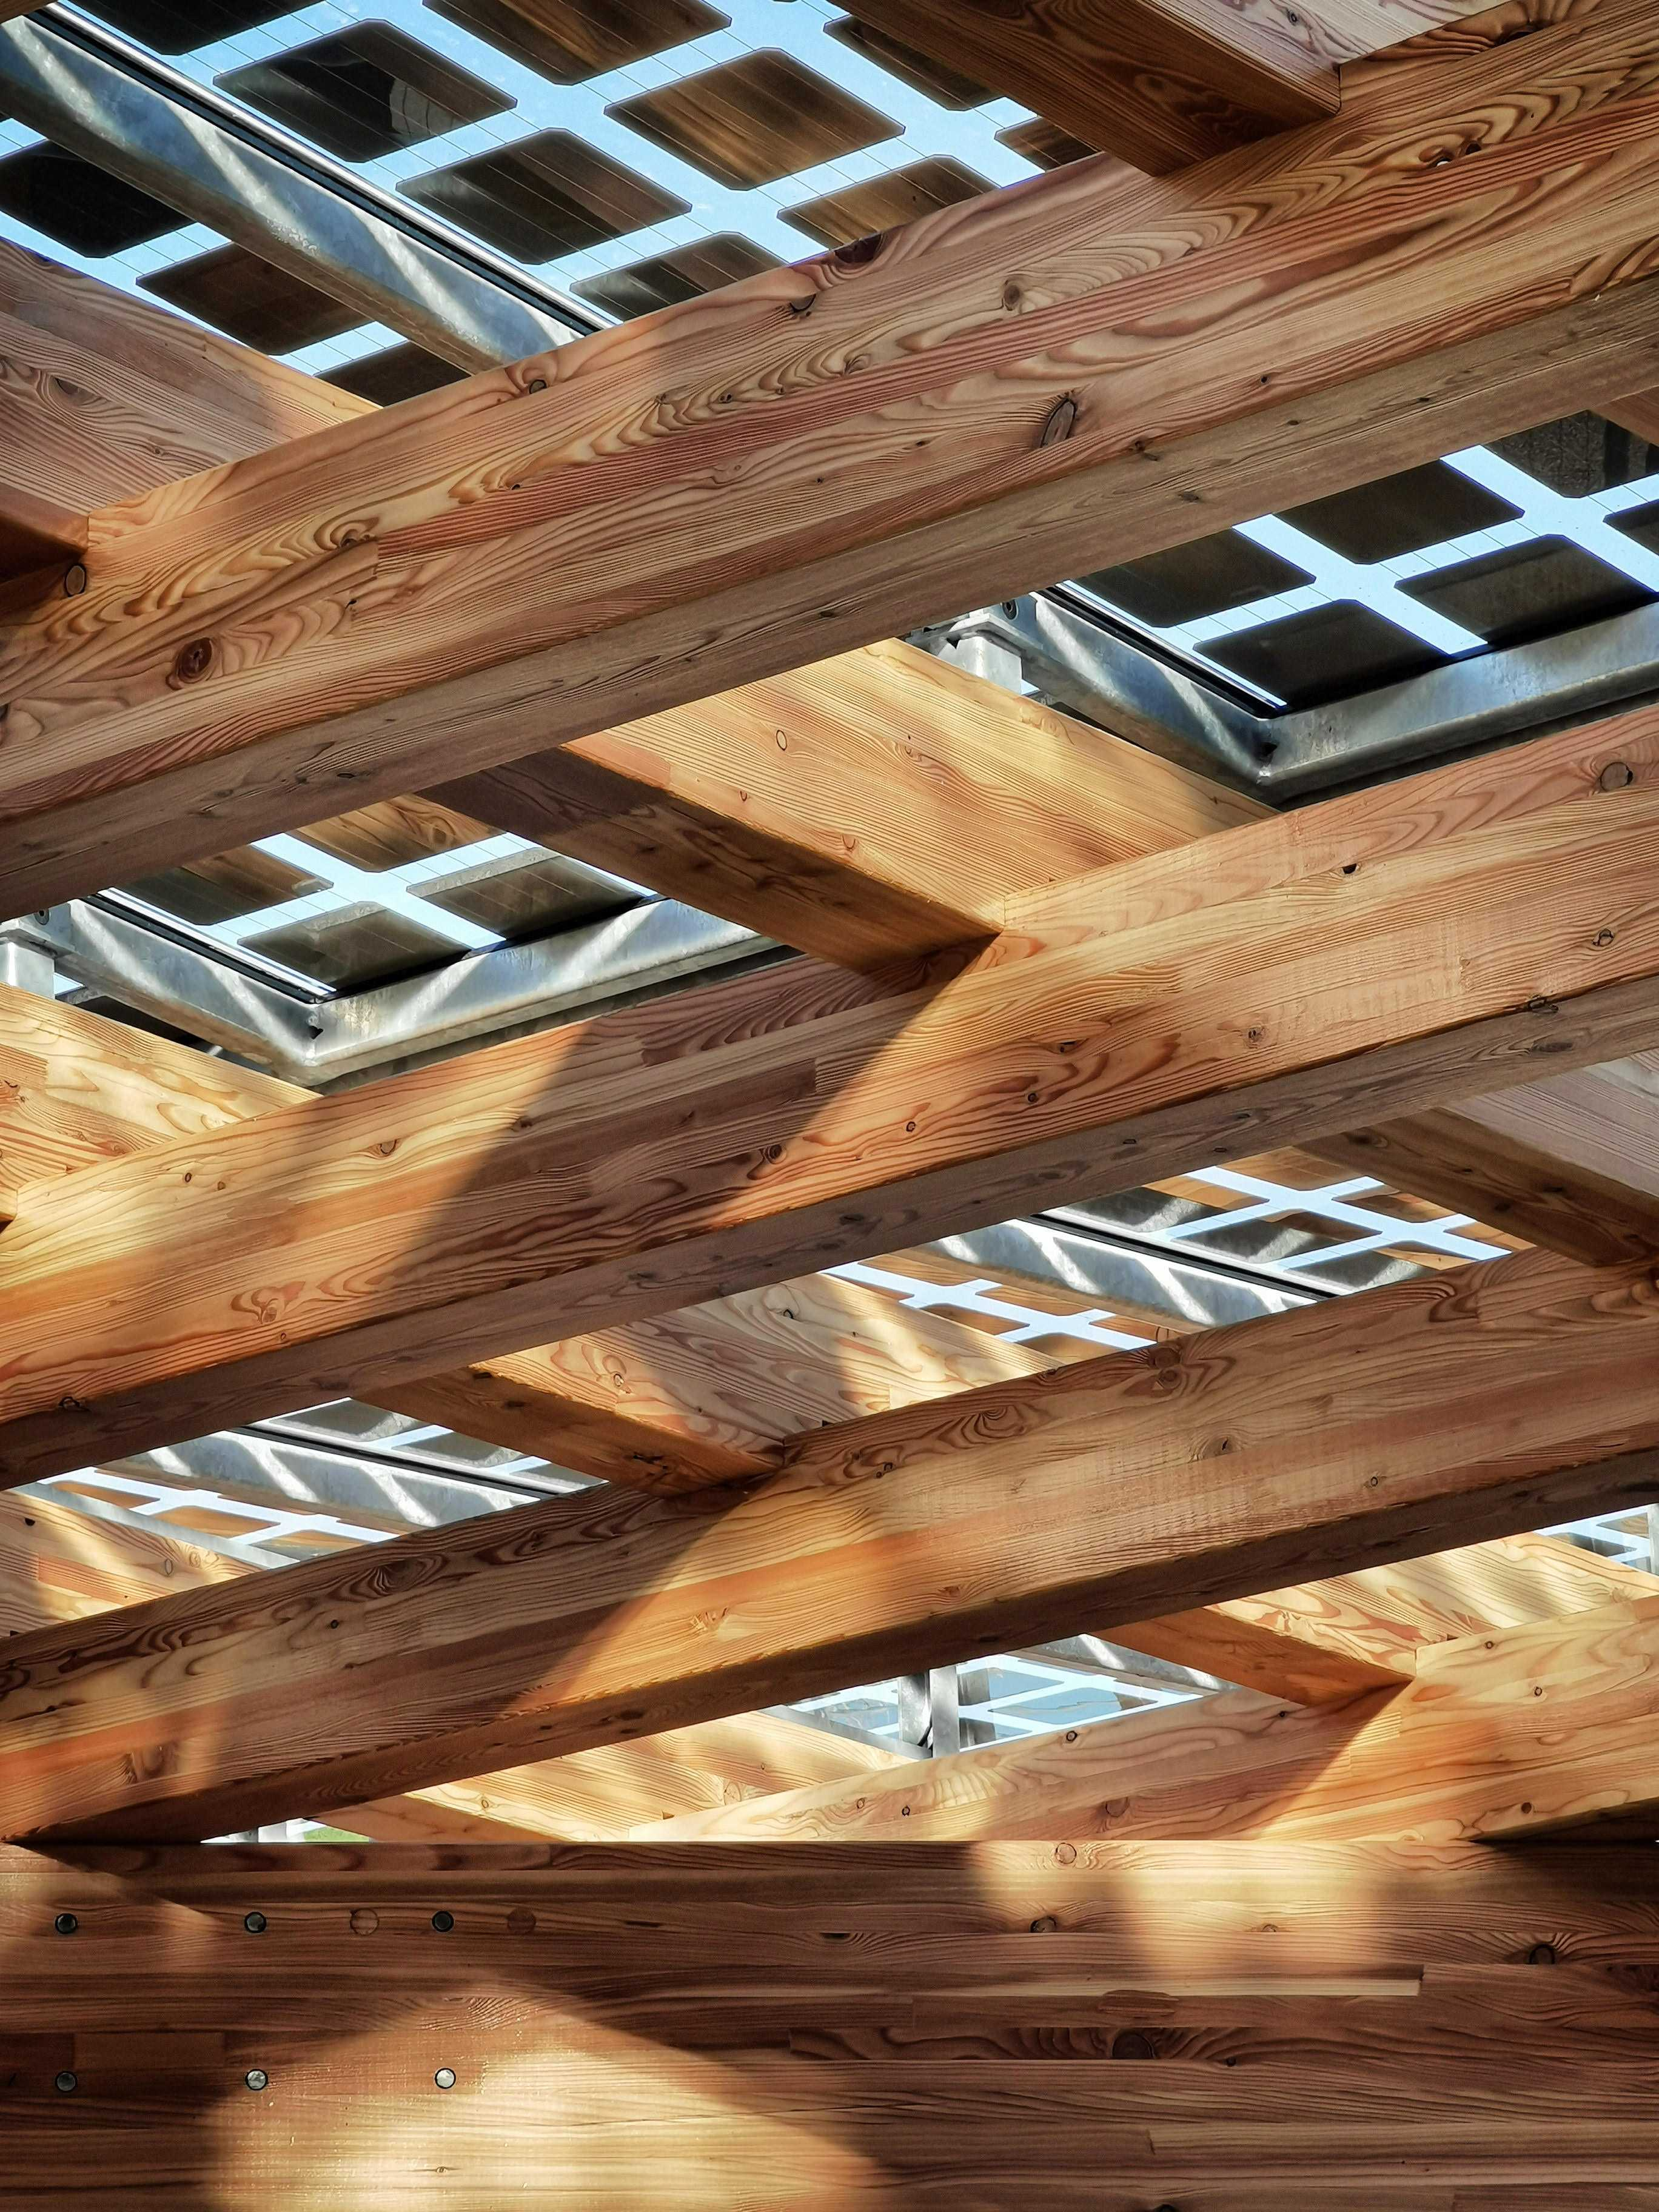 Shadows and light shining through photovoltaic panels onto the K:Port timber lattice structure.